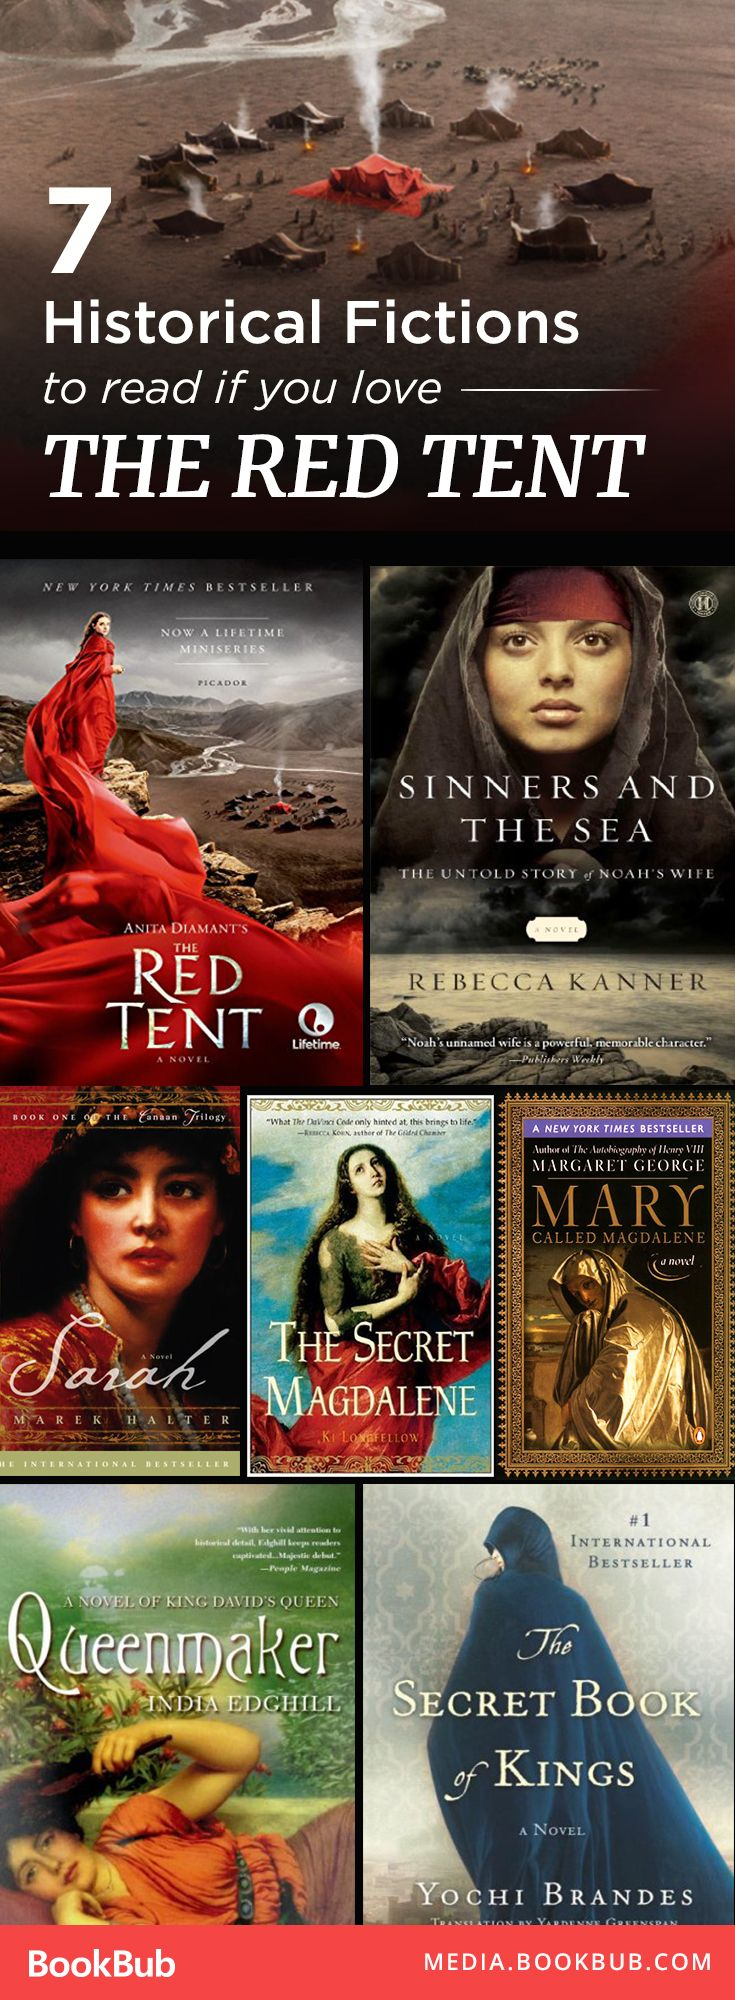 Amazing historical fiction novels to read next -- especially for fans of The Red Tent.